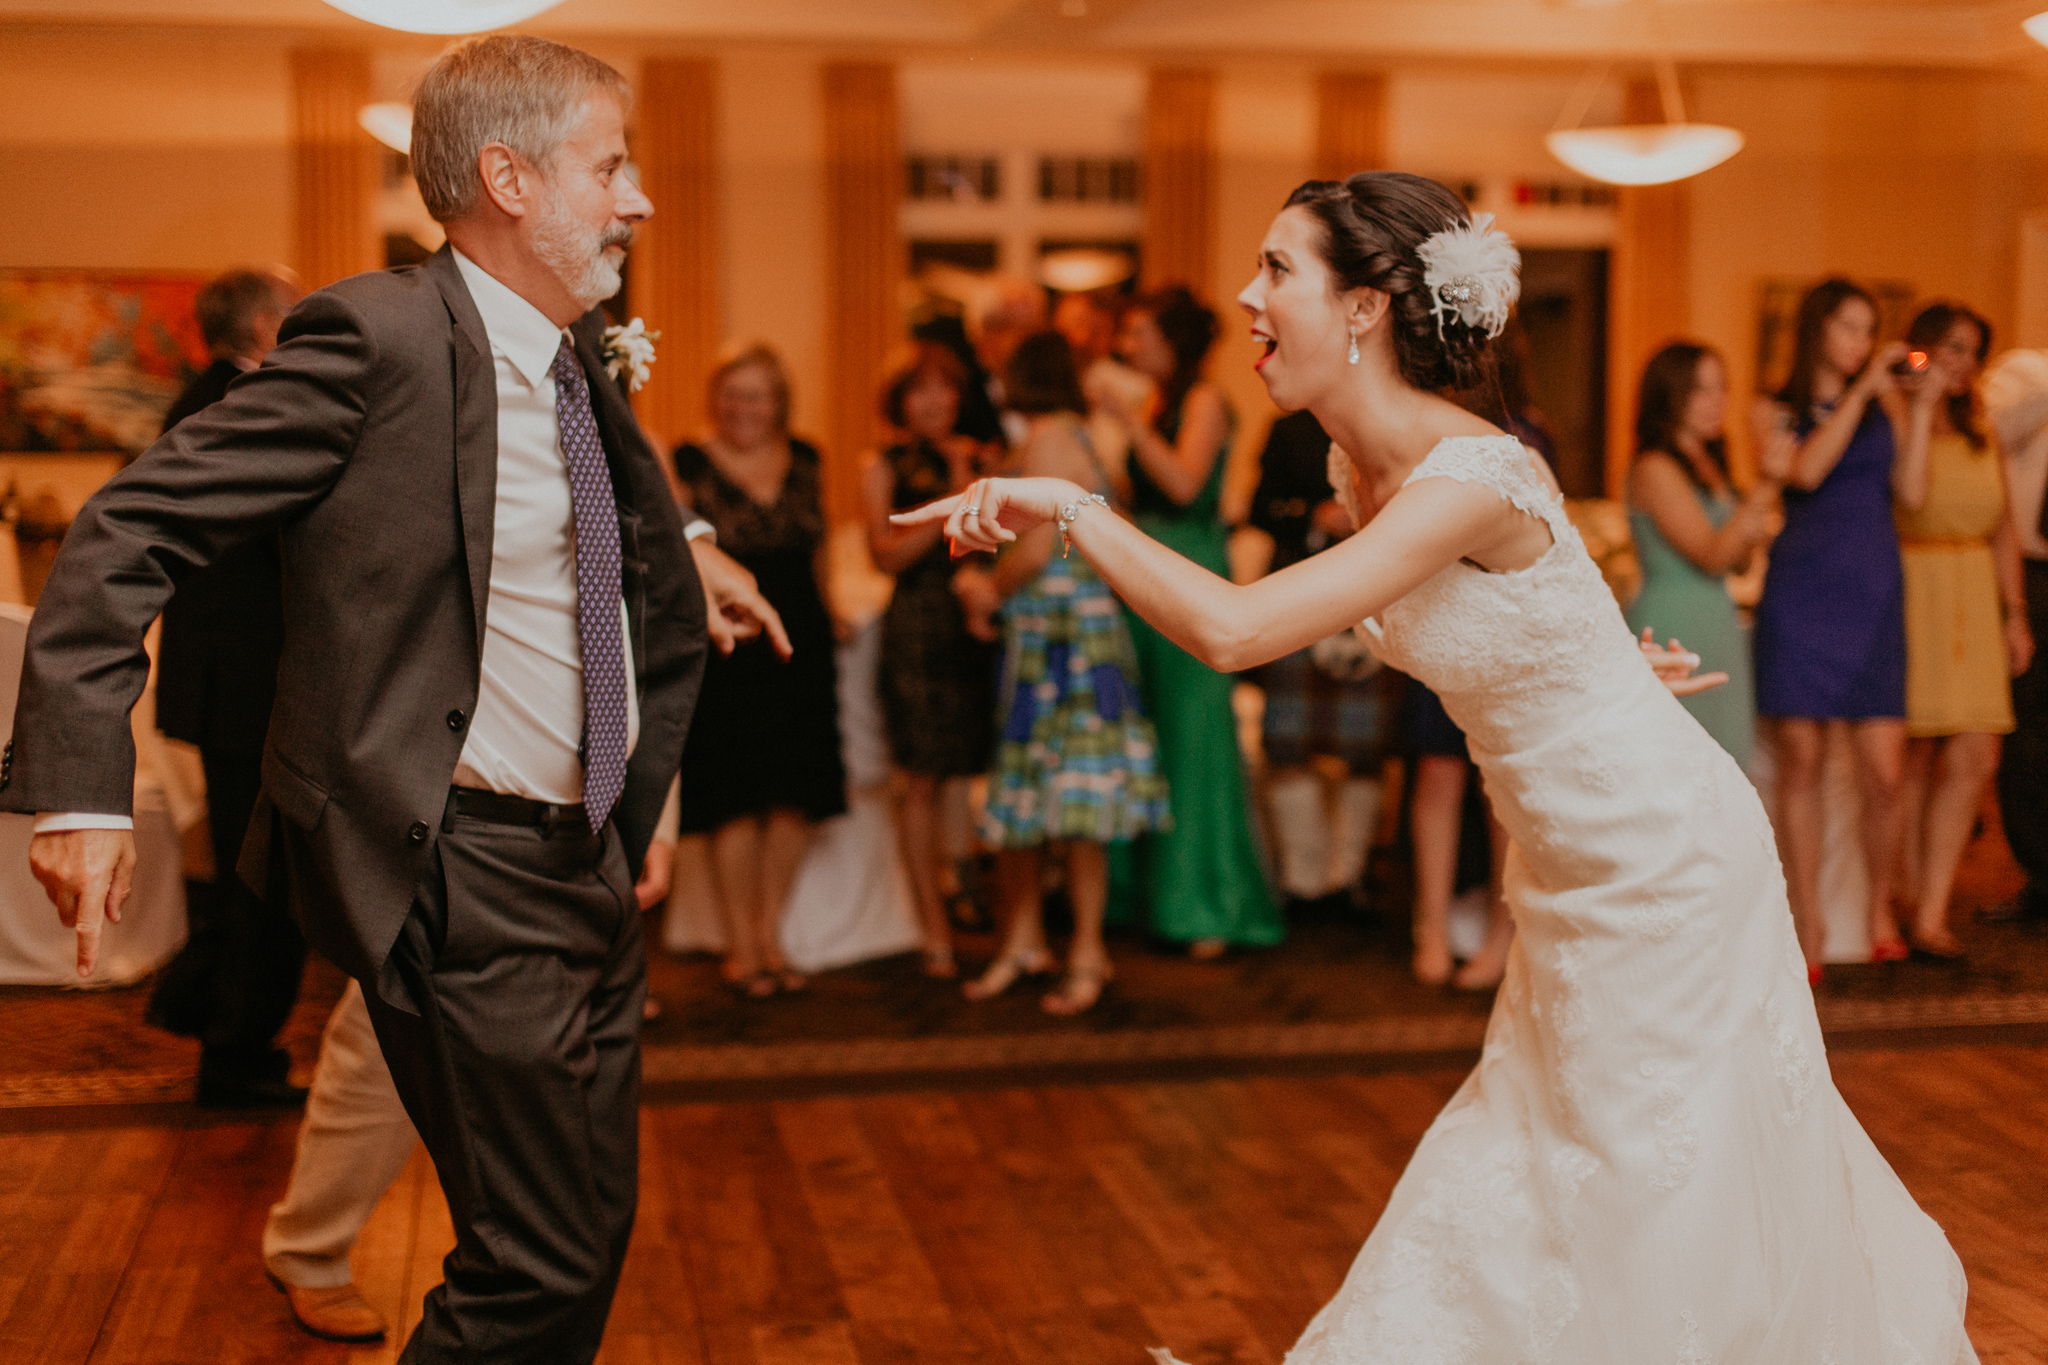 Bride smiles and has fun dancing with dad during wedding